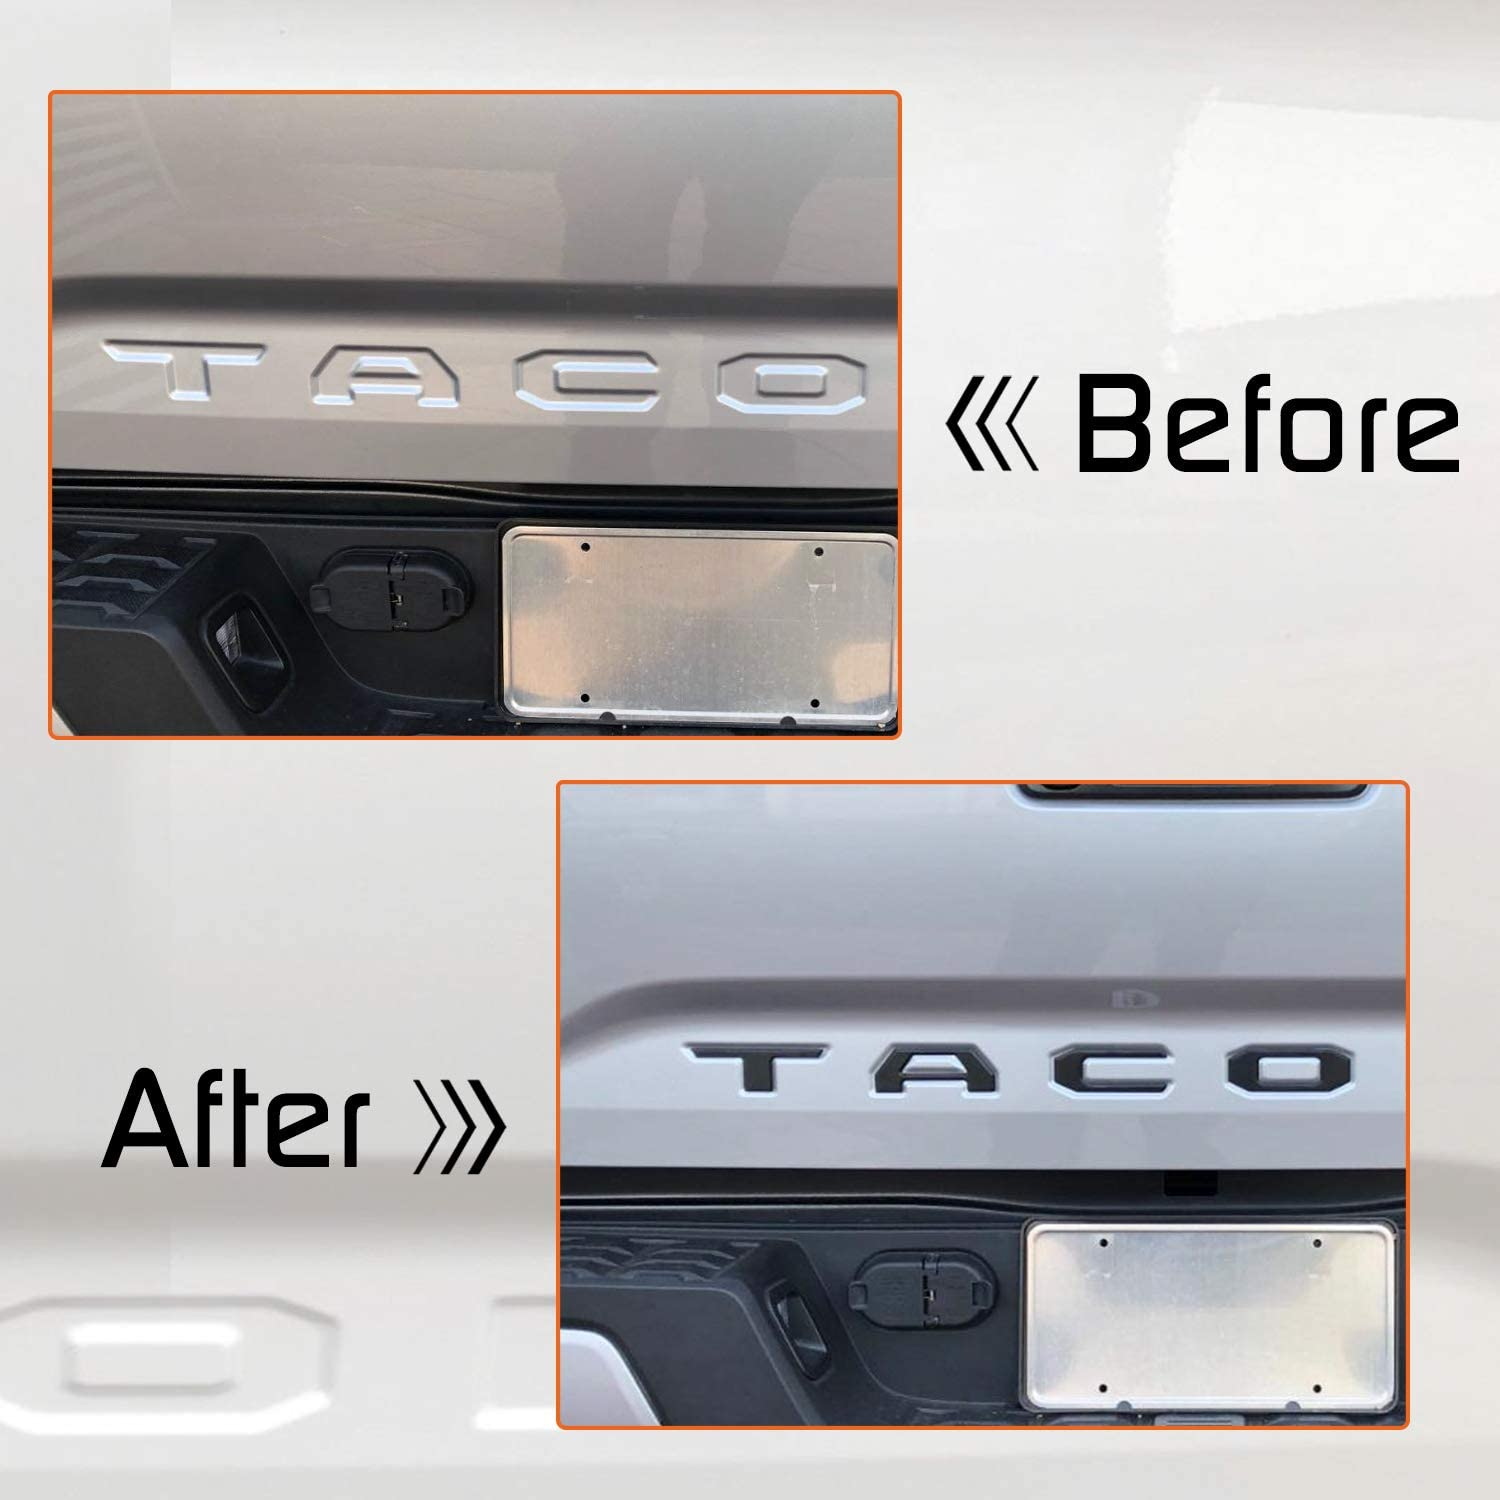 SEVENS Tailgate Letters Fit 2016 2017 2018 2019 2020 Toyota Tacoma Raised Metal Emblems Insert Letters Decals with Quality Adhesion